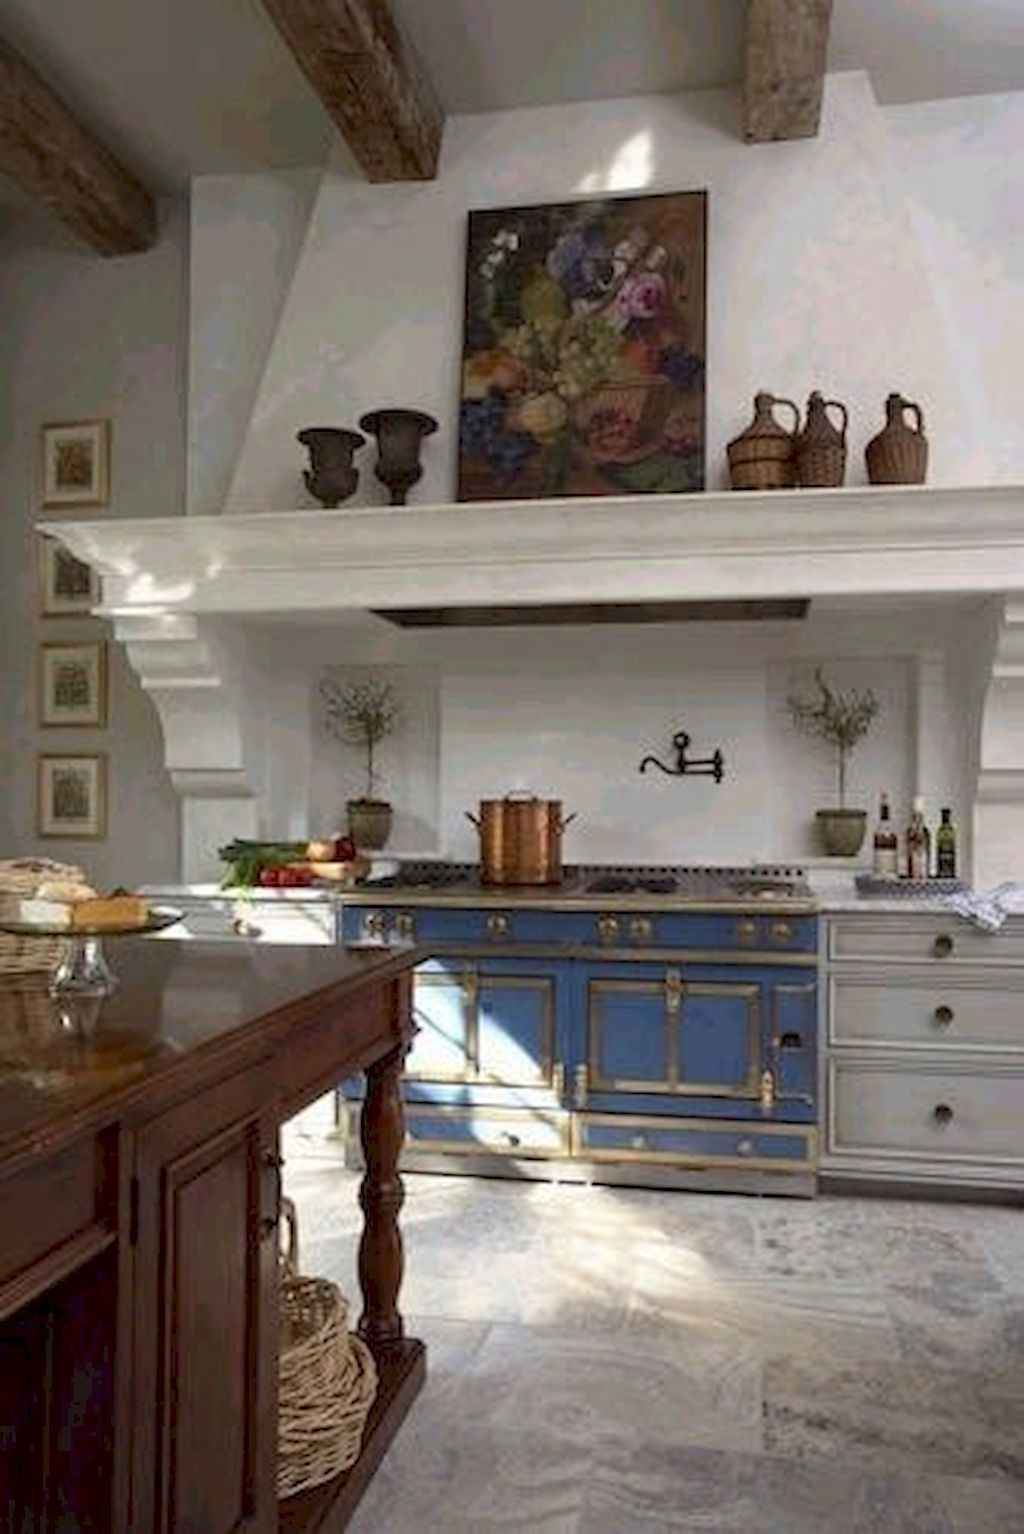 Incredible french country kitchen design ideas (10)